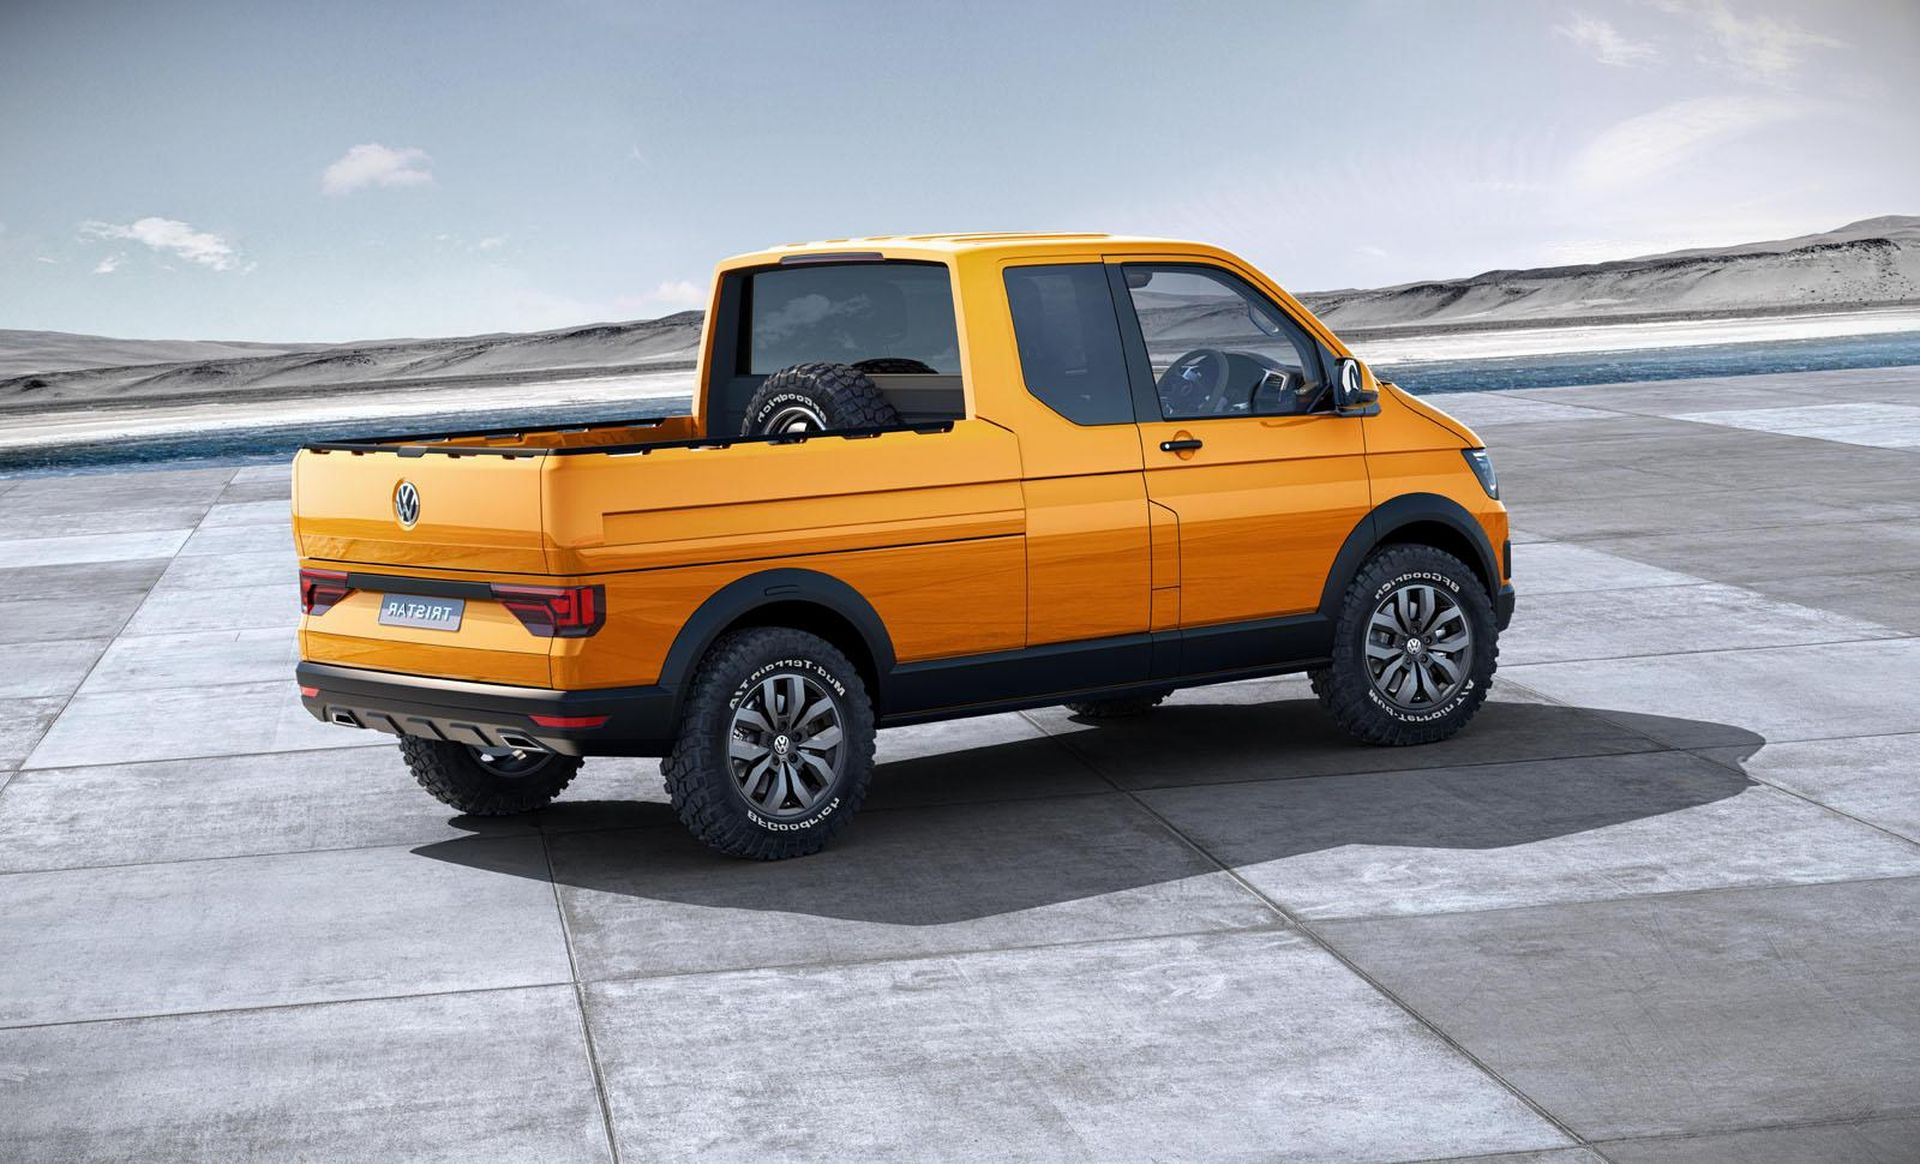 2019 Volkswagen Amarok Yellow Color